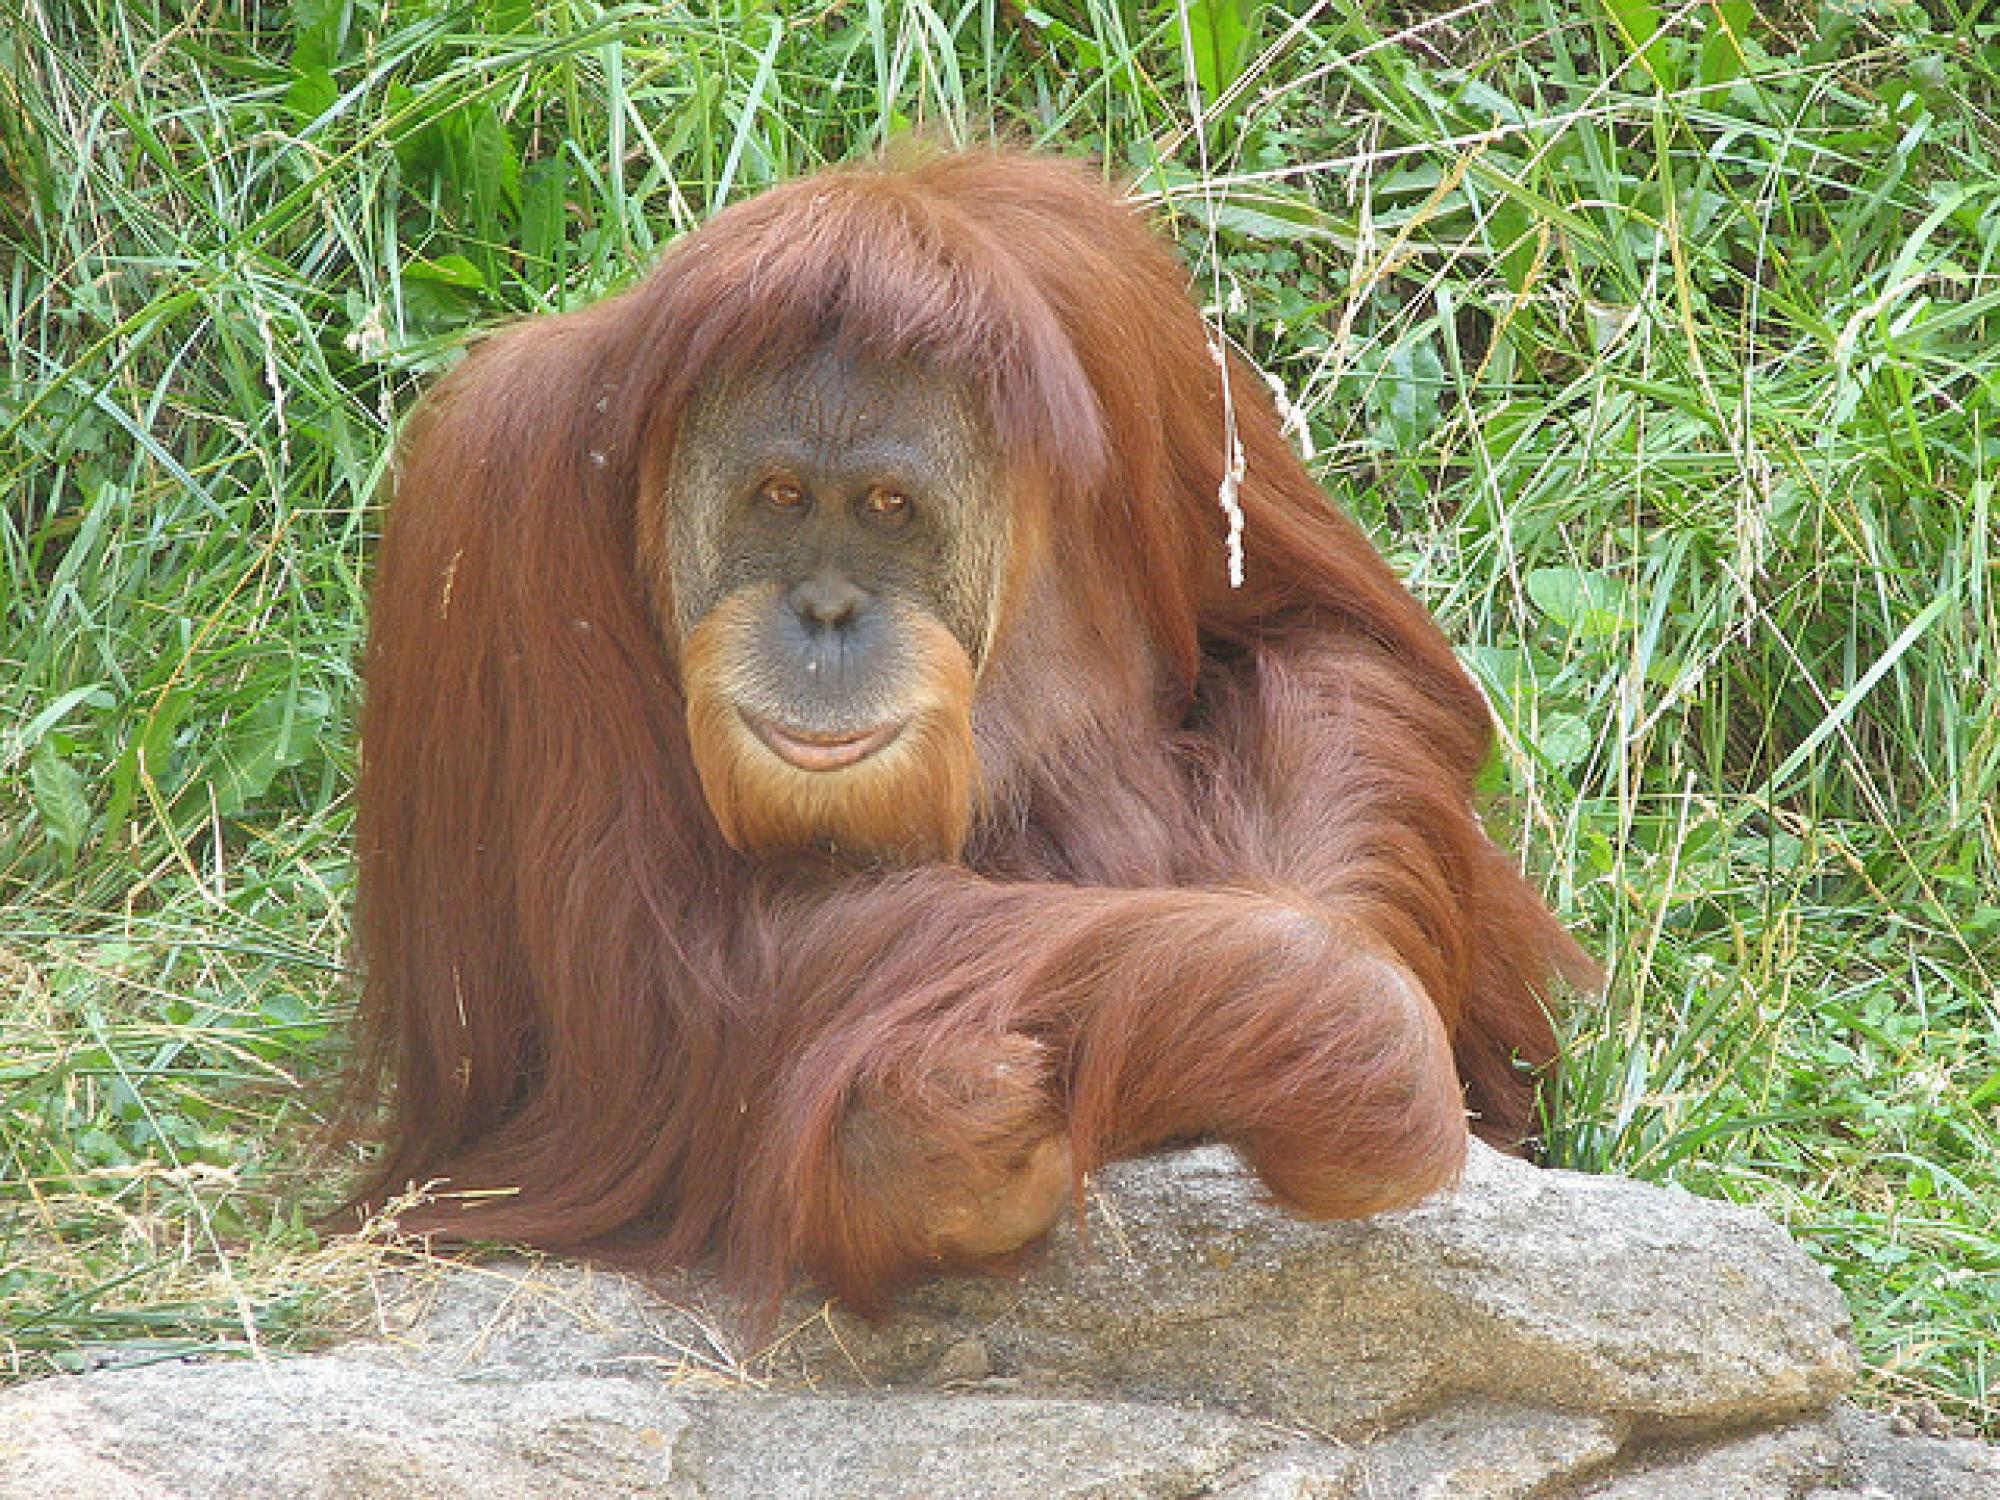 A Sumatran Orangutan photographed at Cincinnati Zoo.